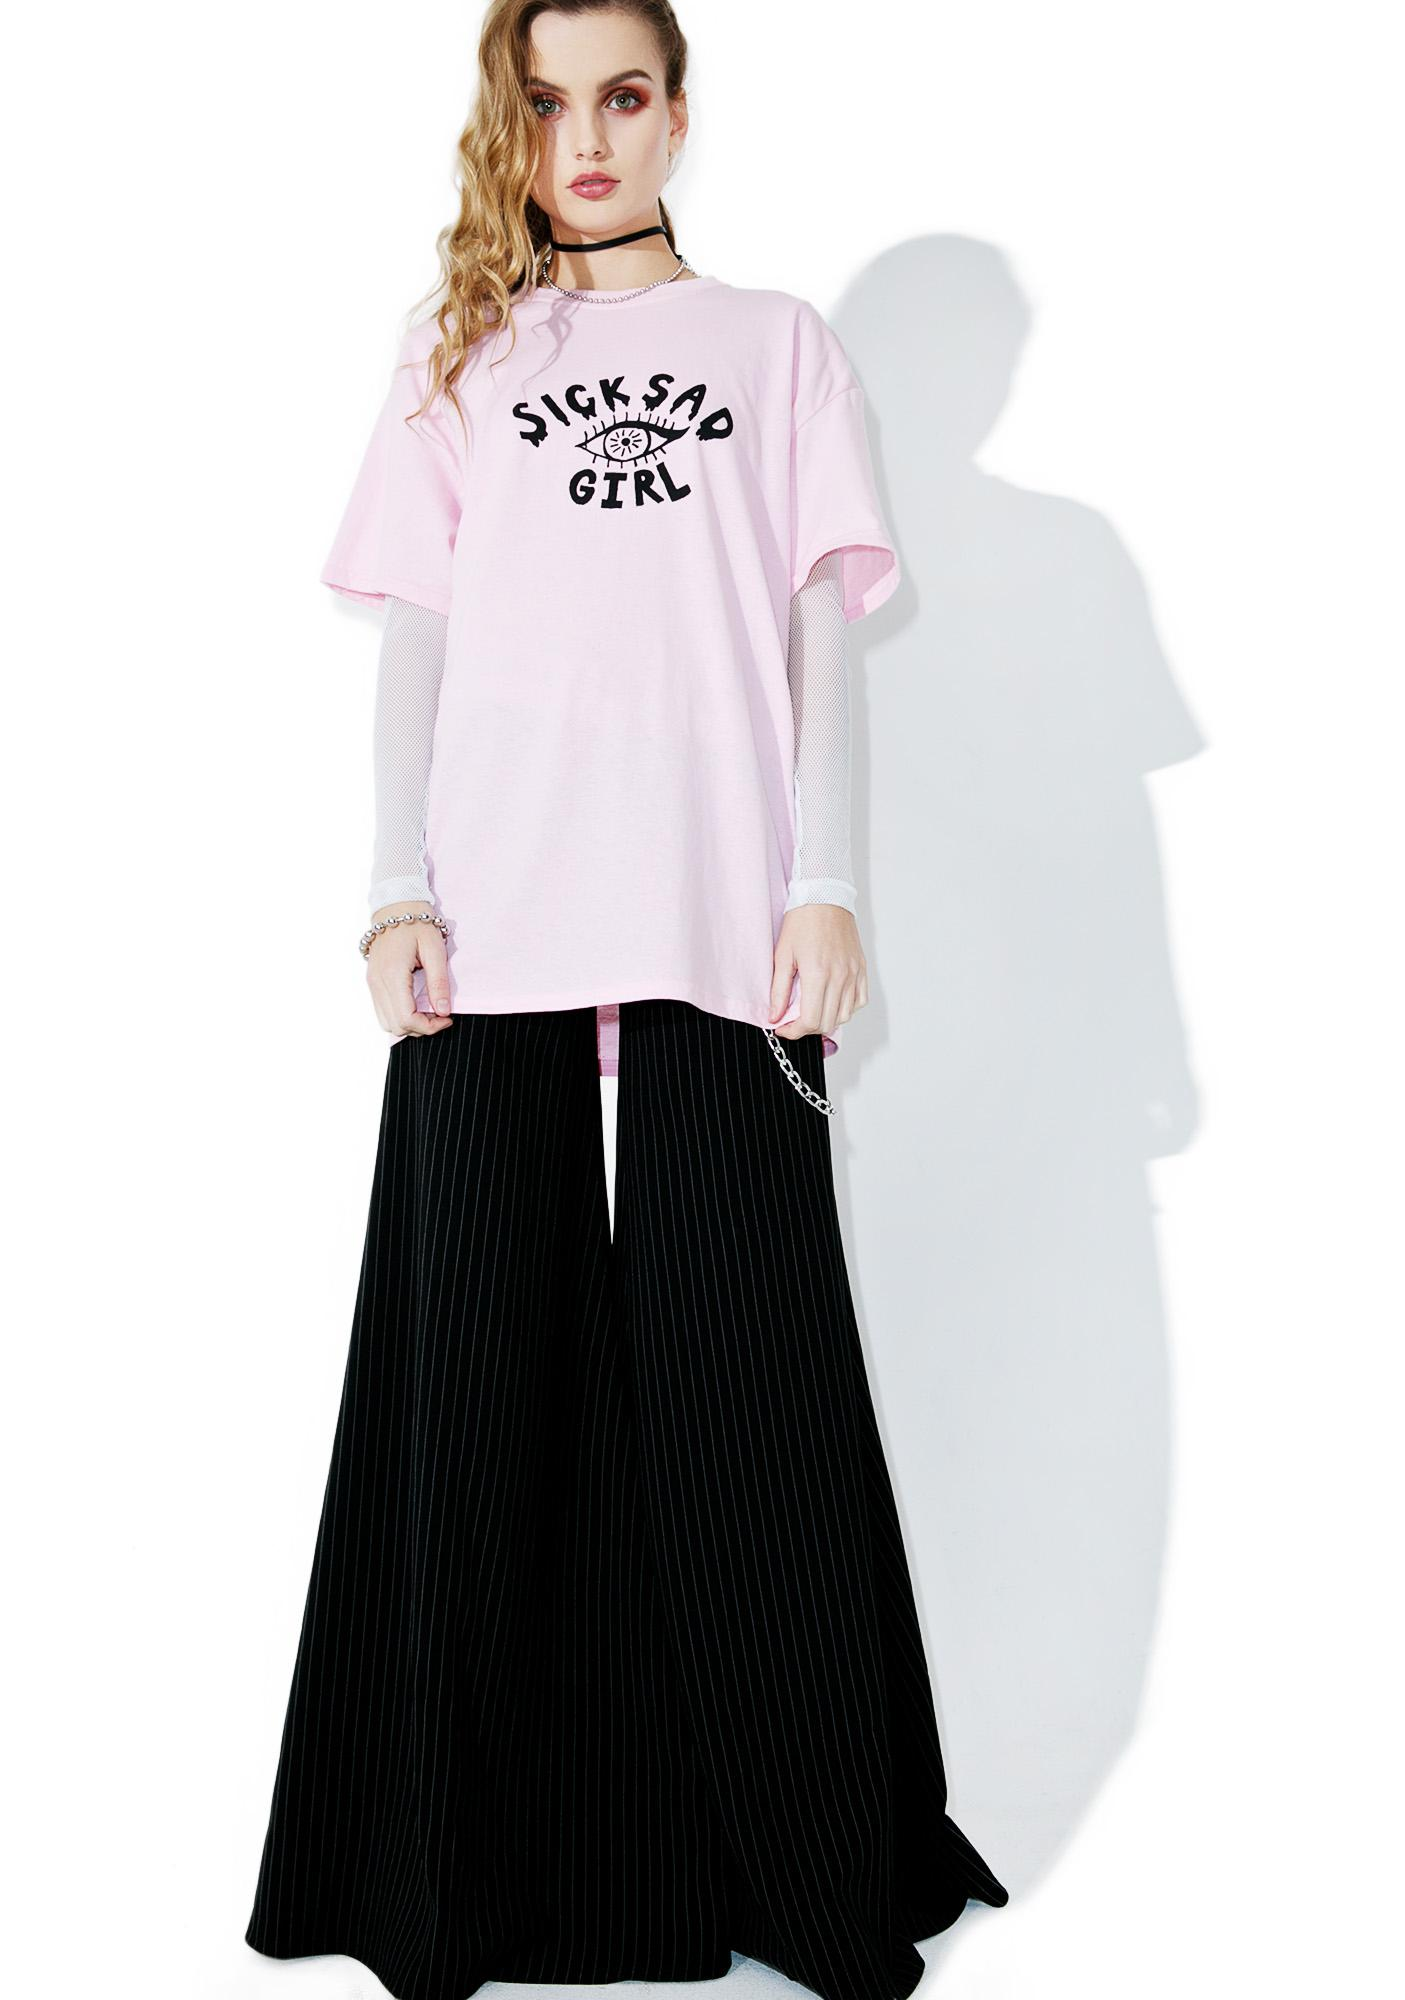 Creepy Gals Sick Sad Girl Tee